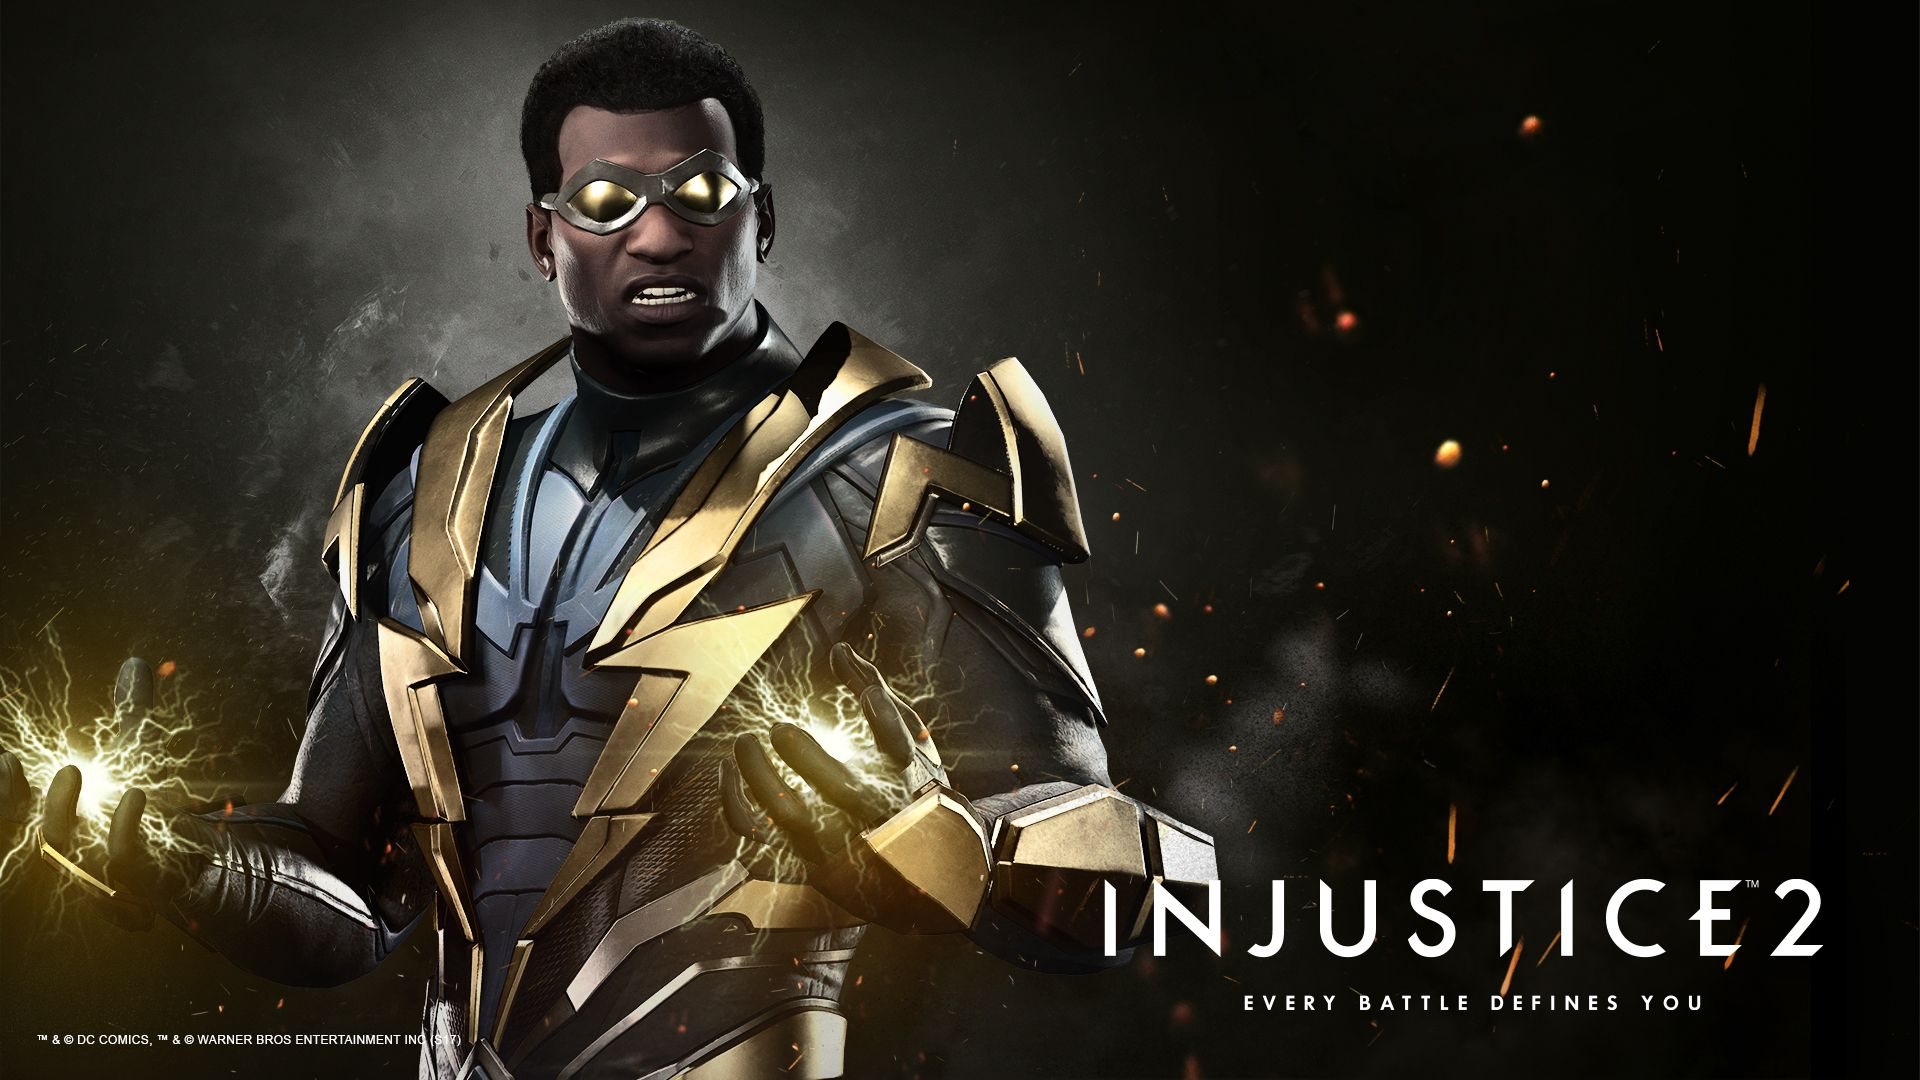 Jefferson Pierce (Injustice)